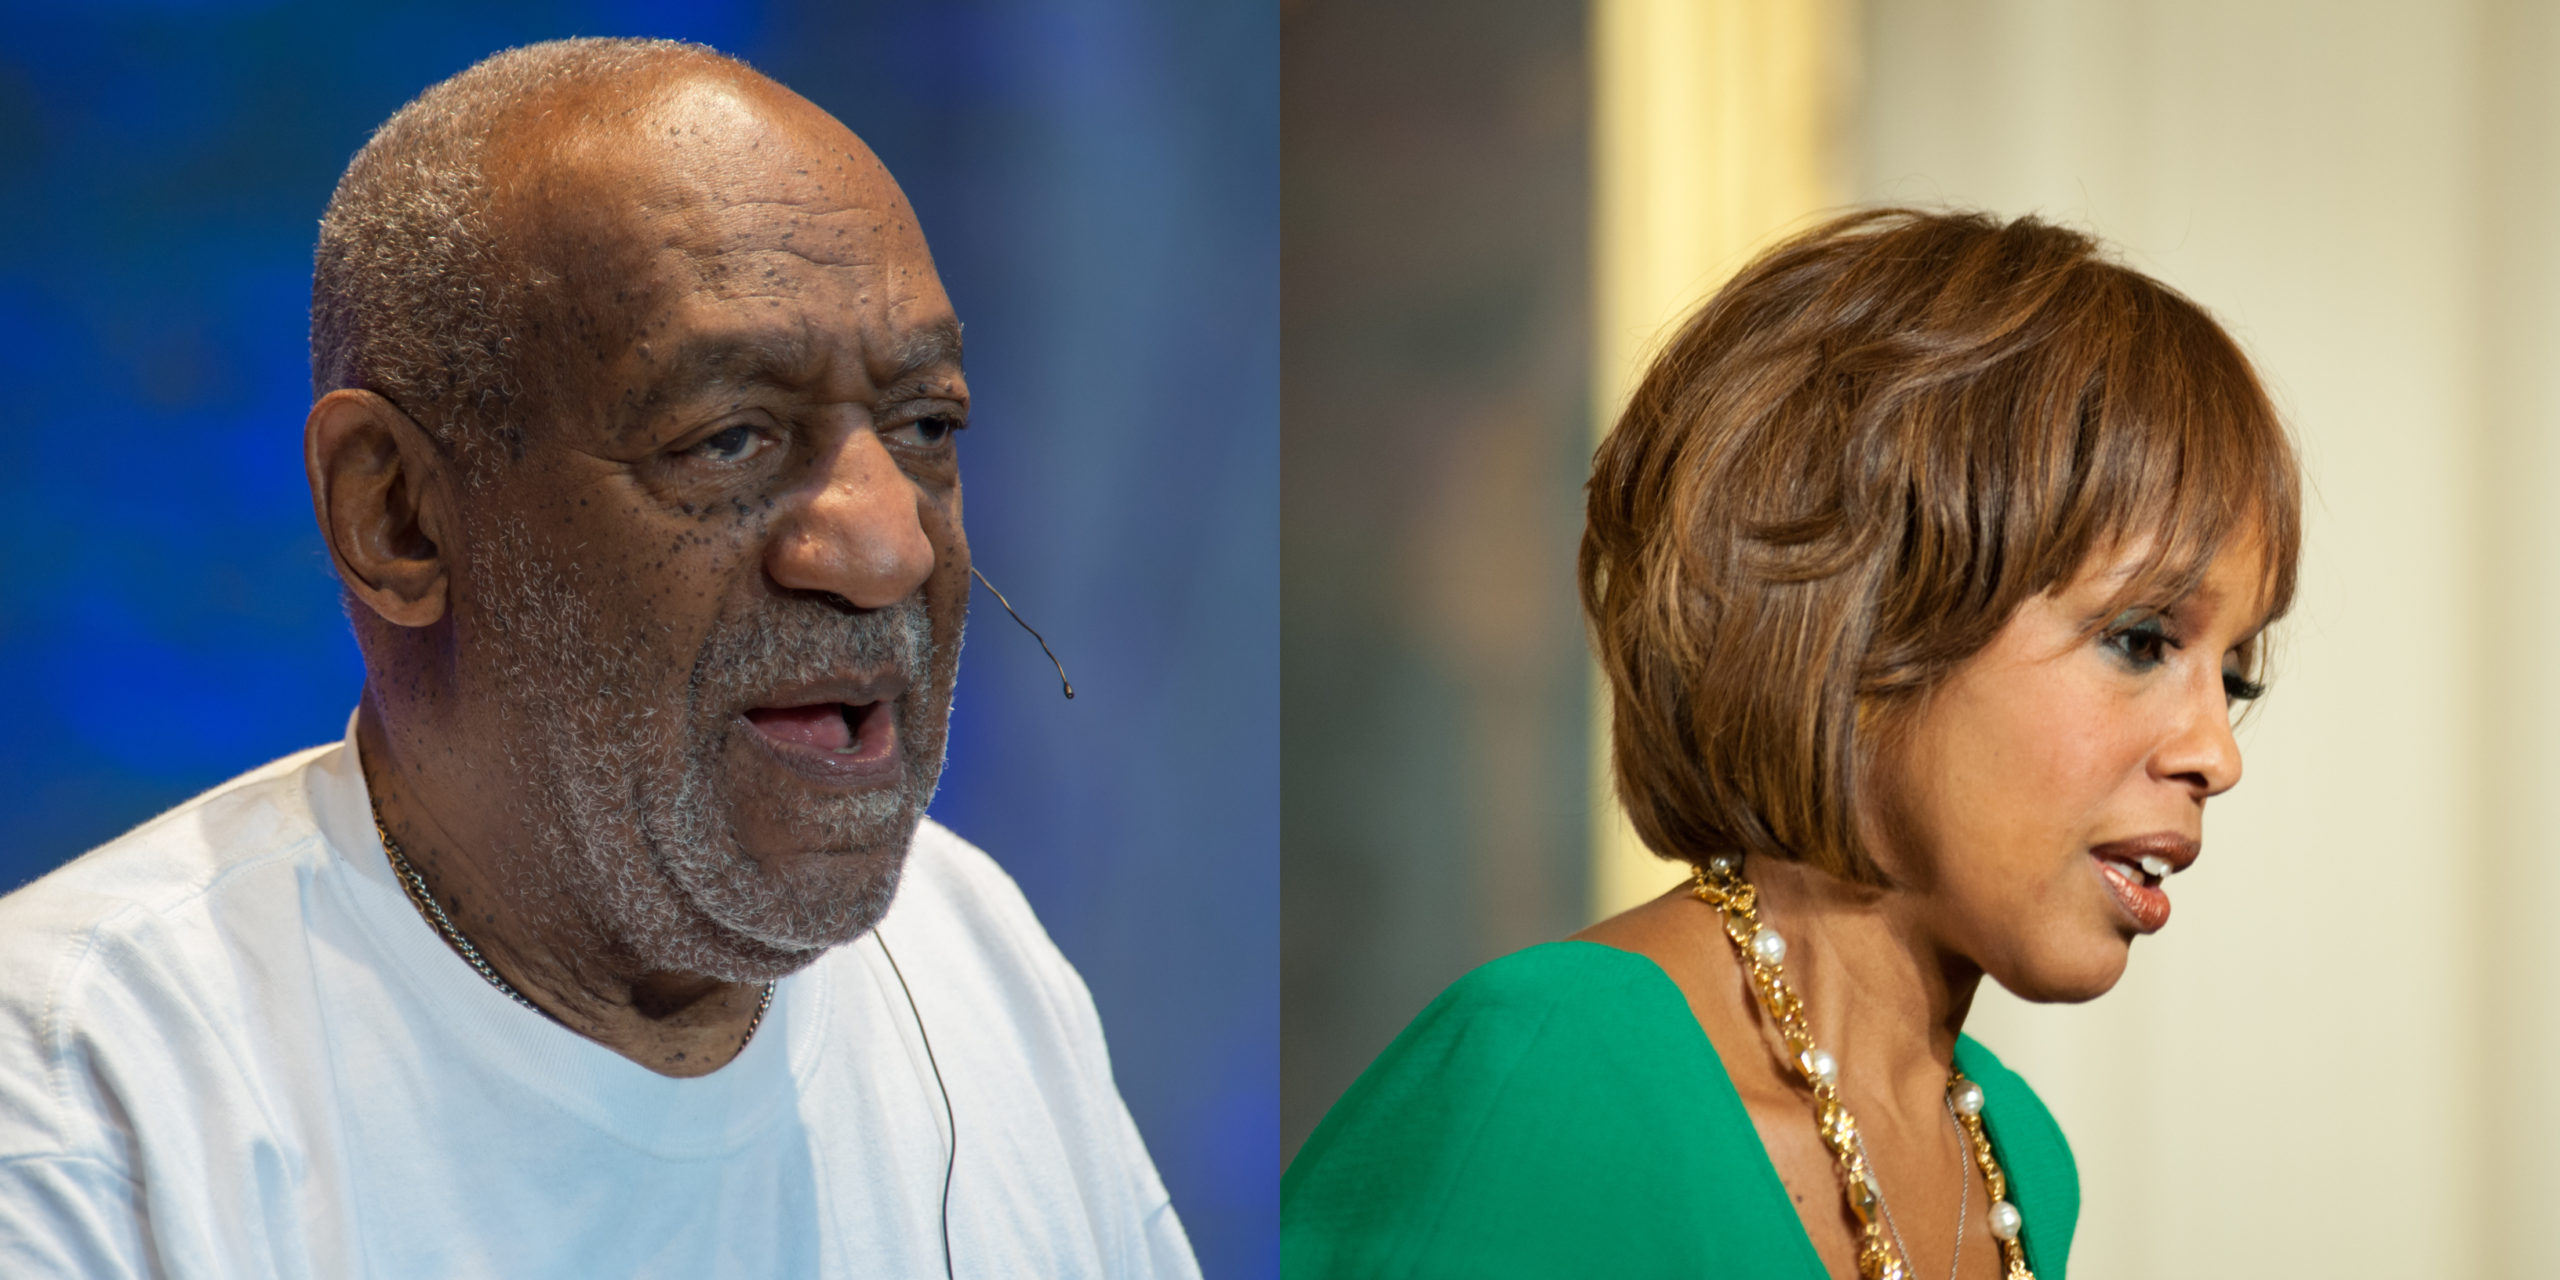 Bill Cosby Calls Out Gayle King From Jail: 'It's So Sad and Disappointing'